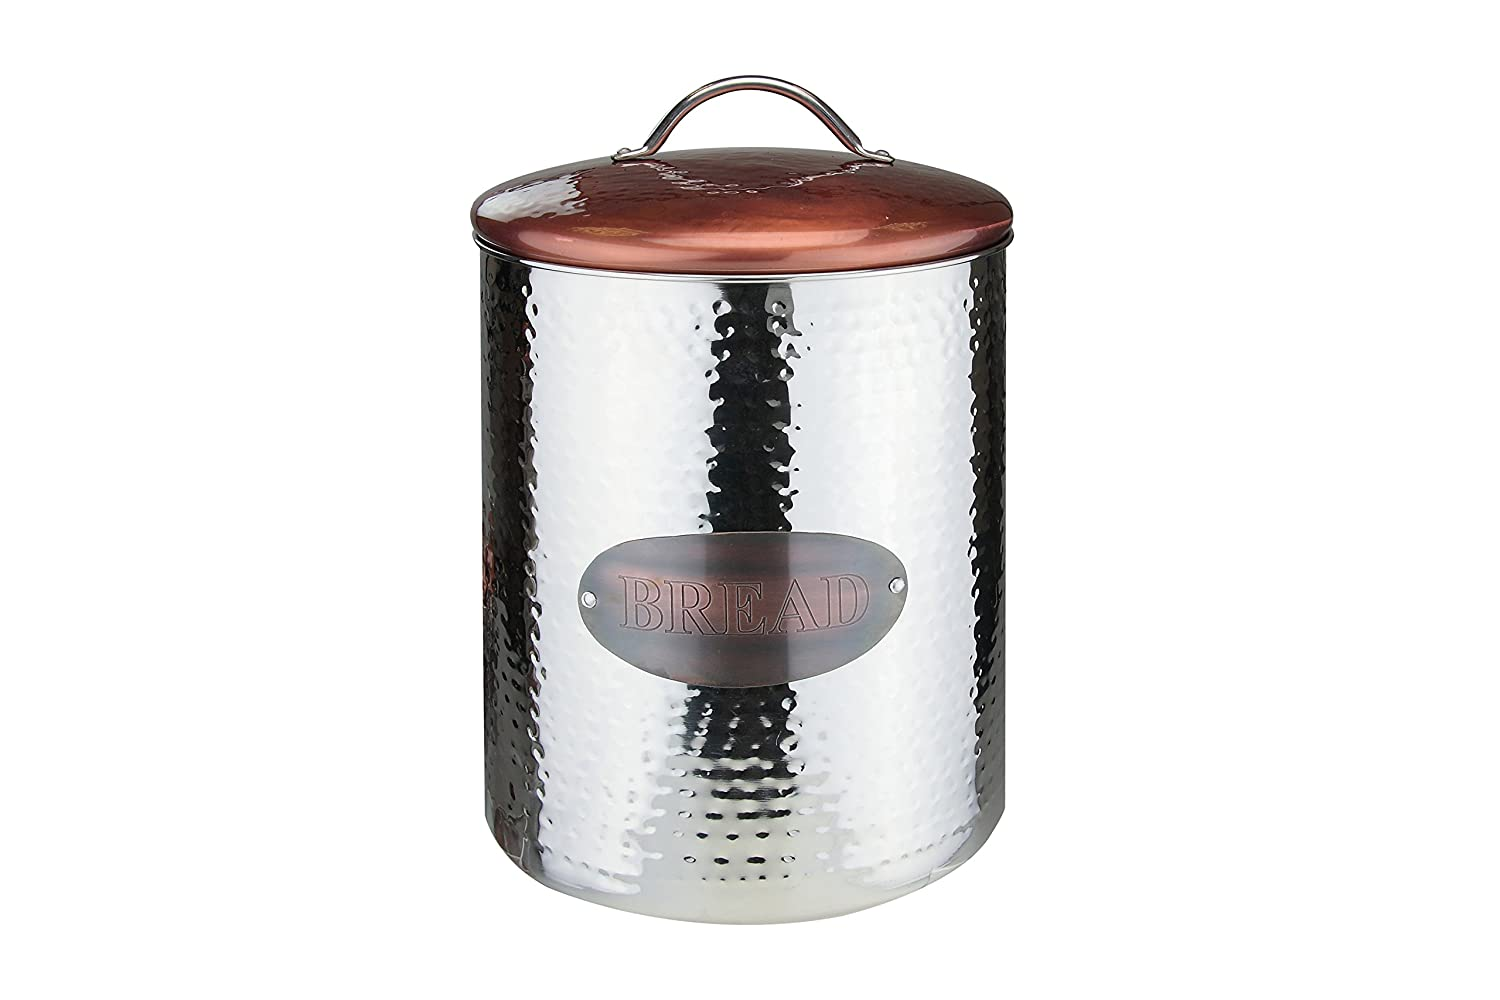 Apollo Bread Canister, Stainless Steel, Copper/Silver 4072